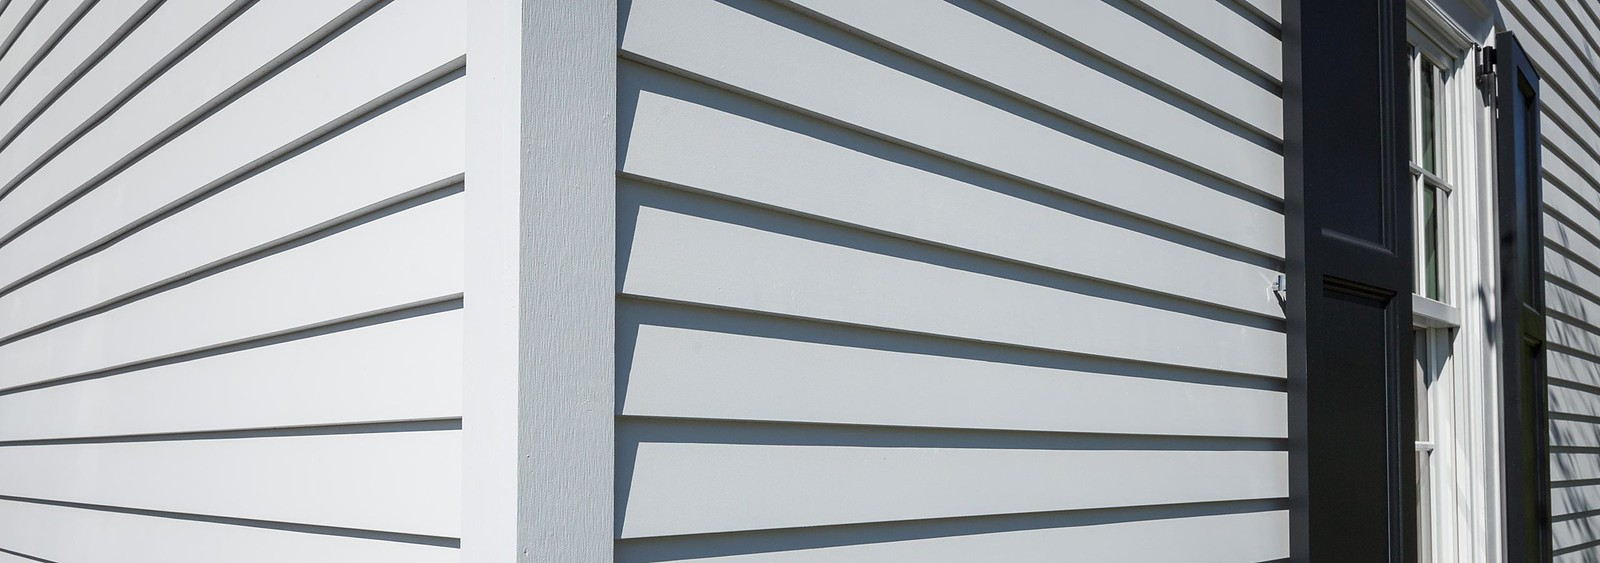 TruExterior Siding in White